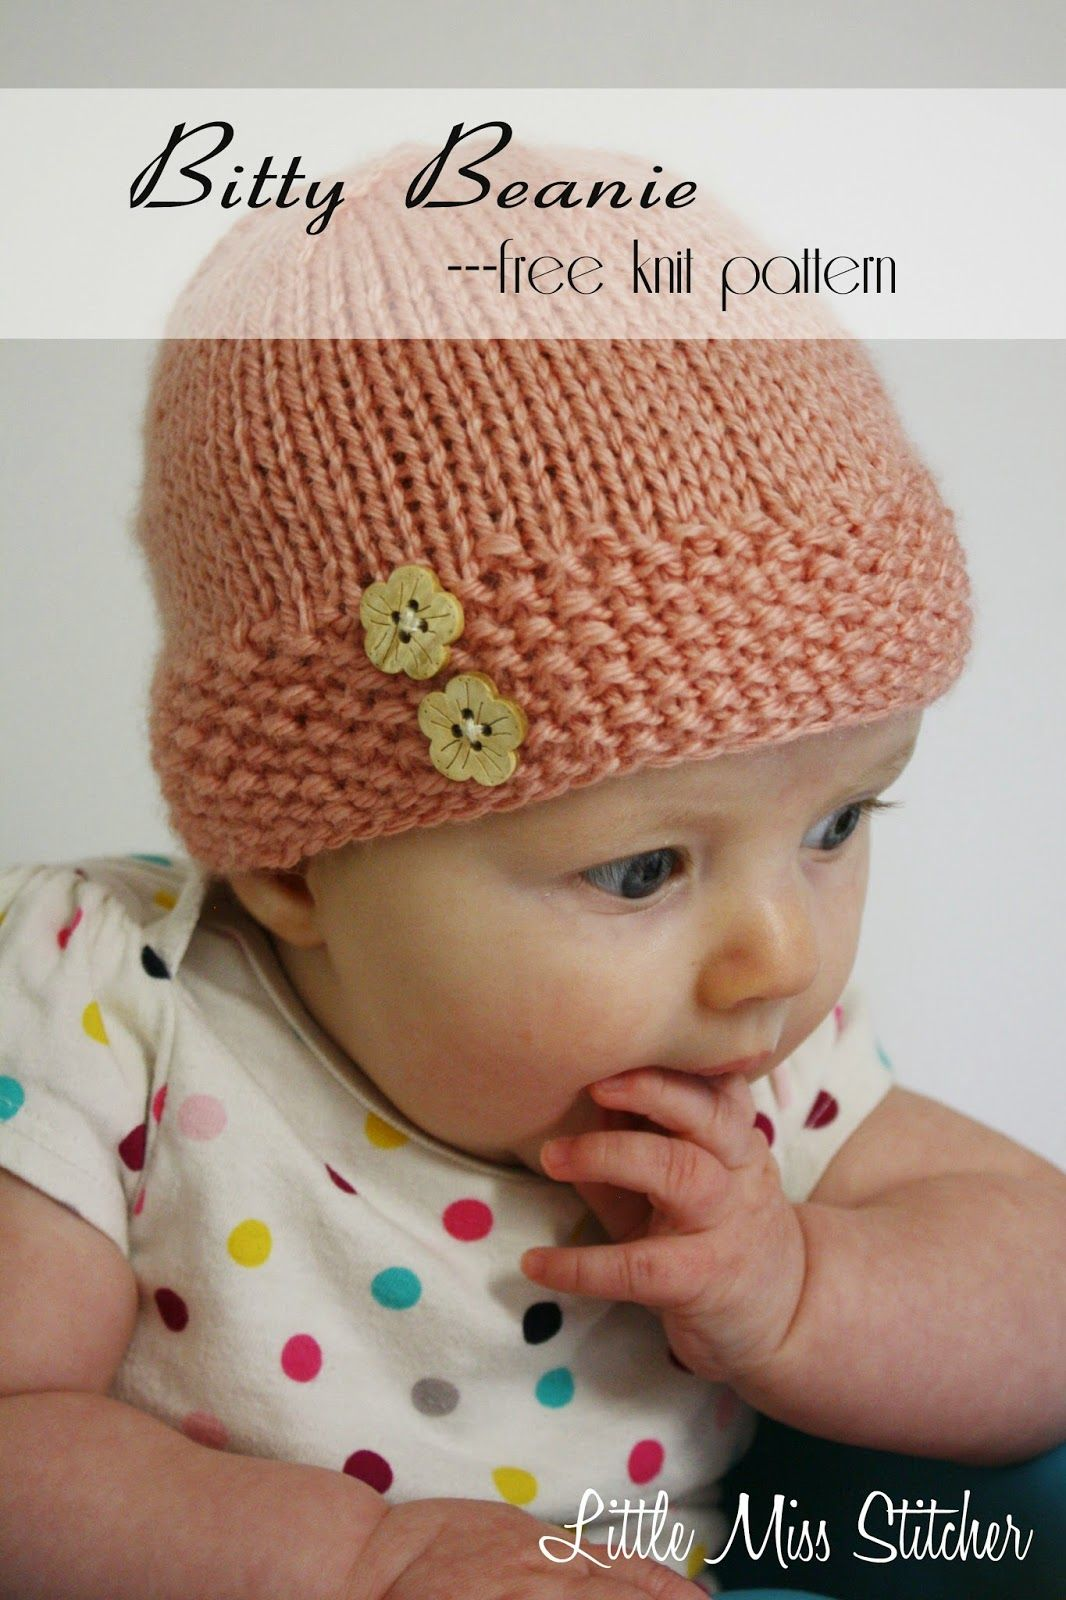 Can I knit during pregnancy